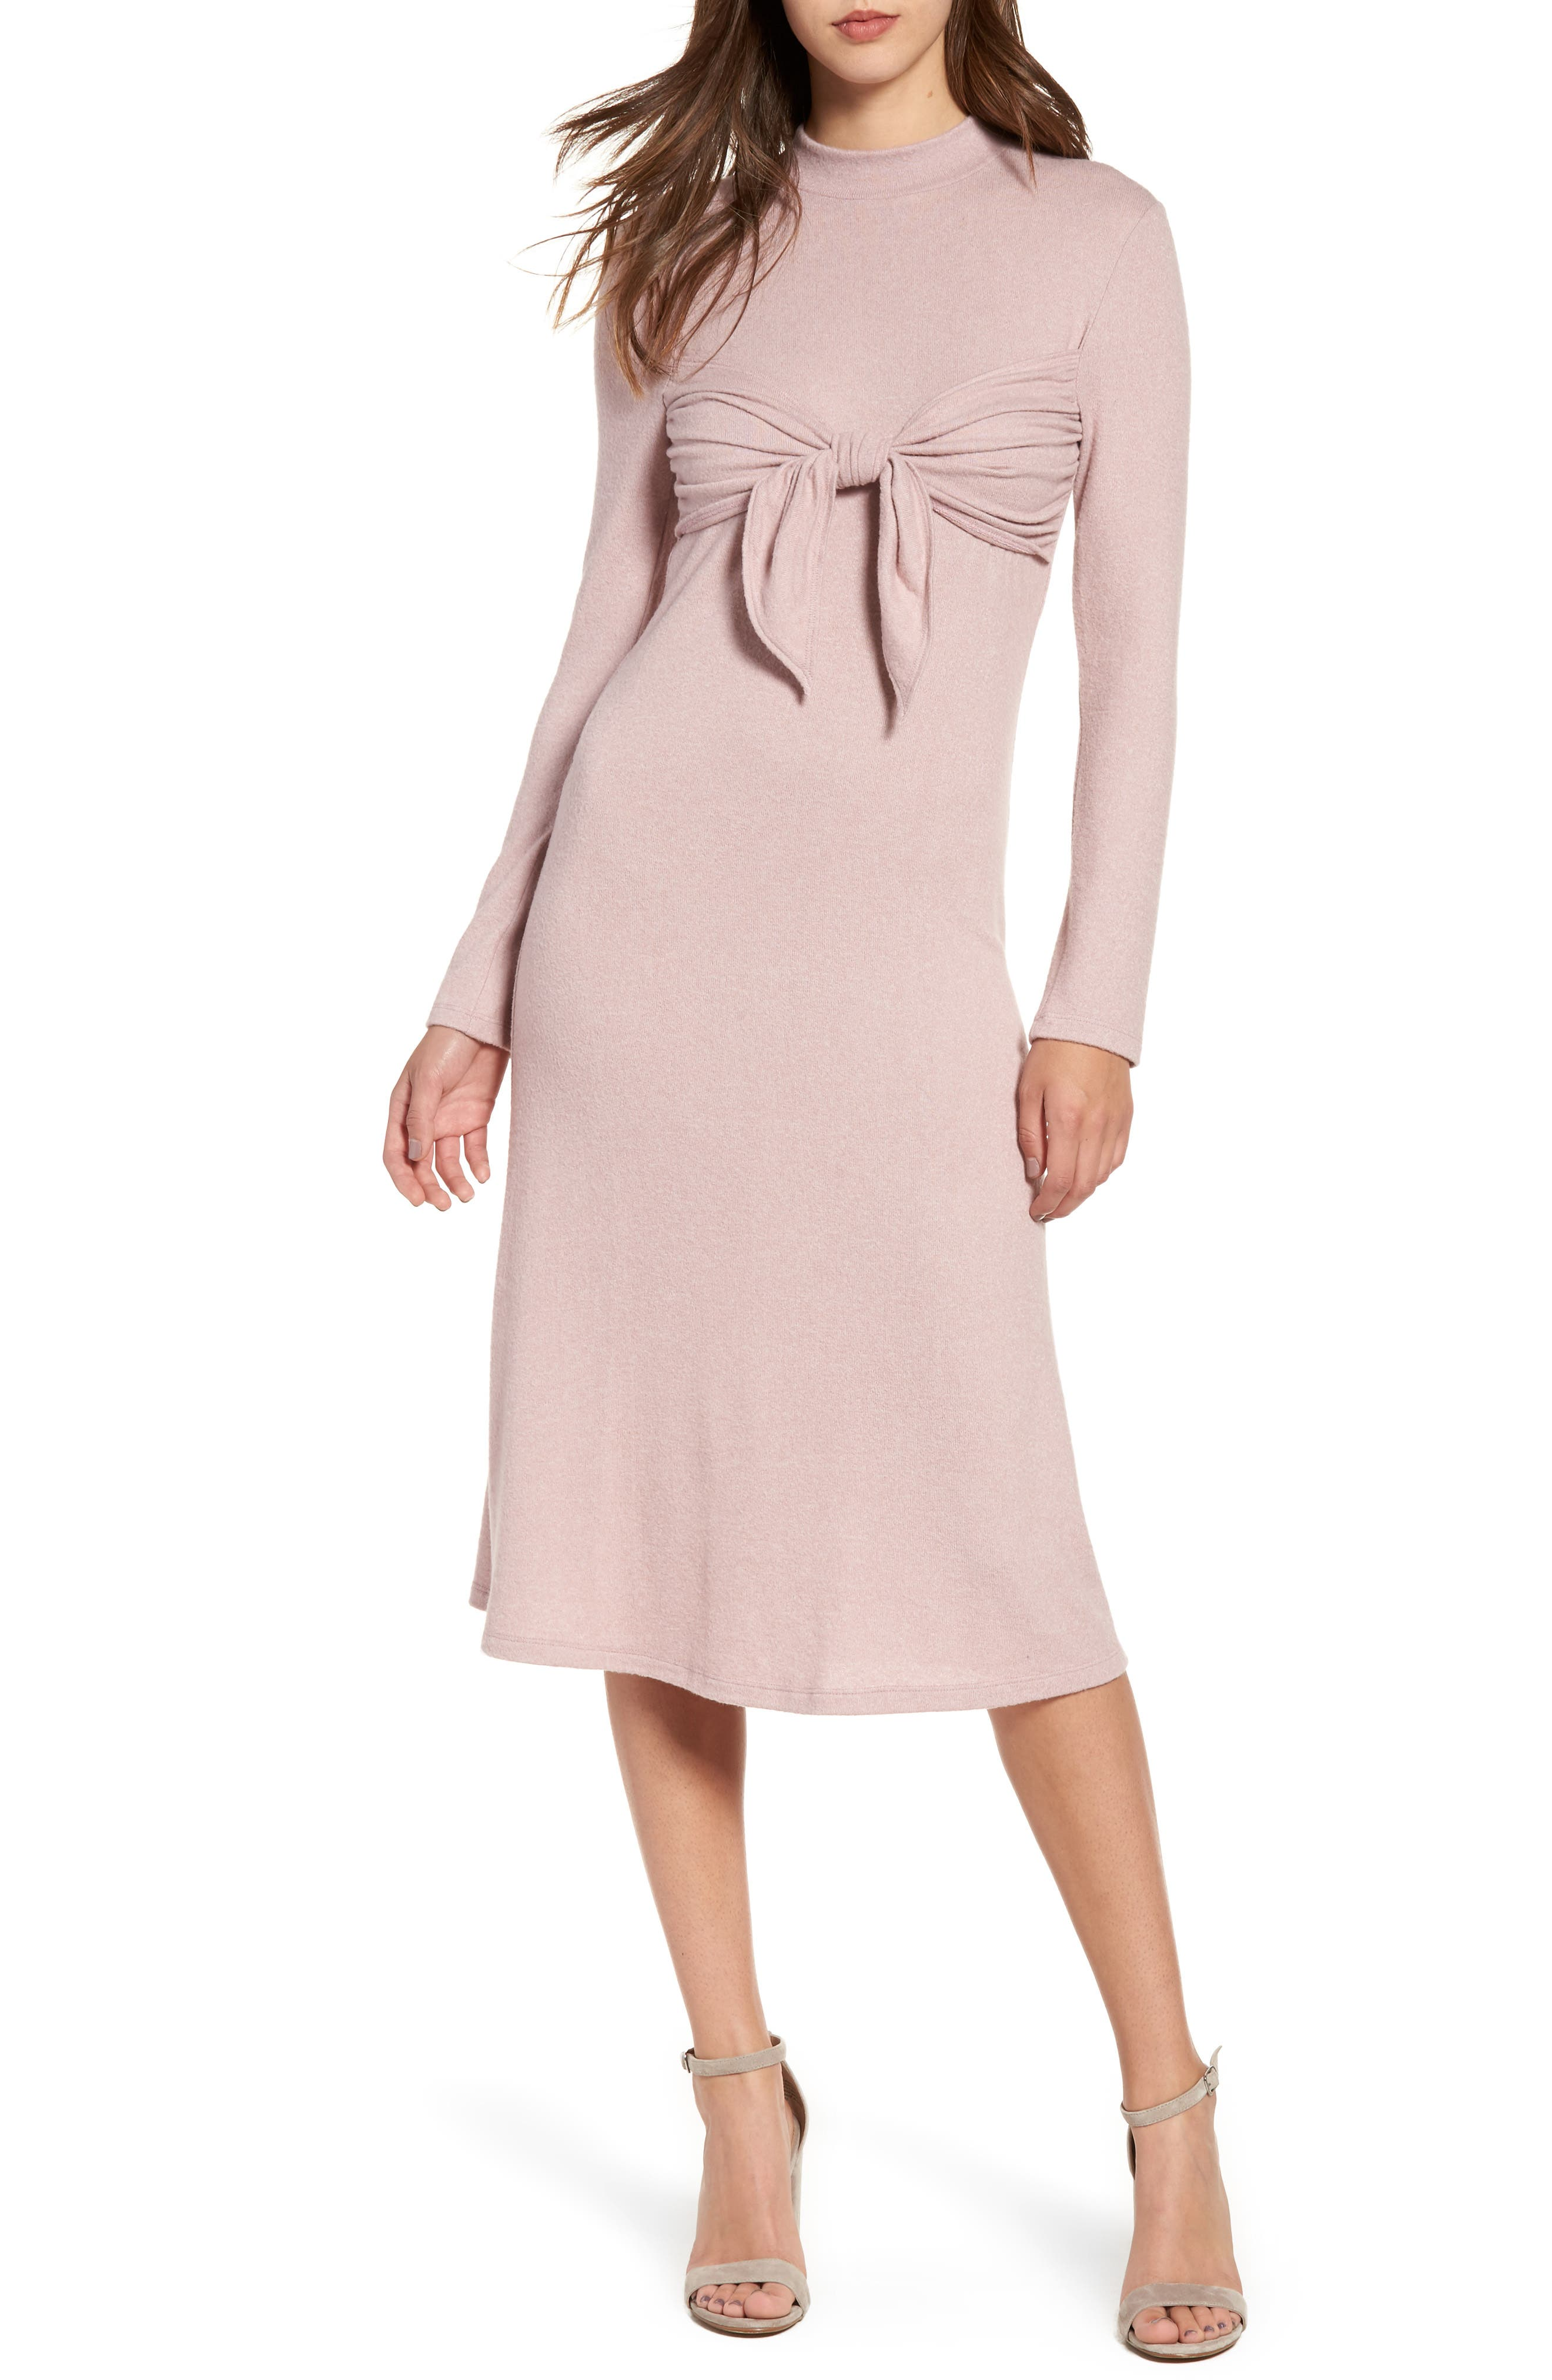 Everly Tie Front Knit Dress